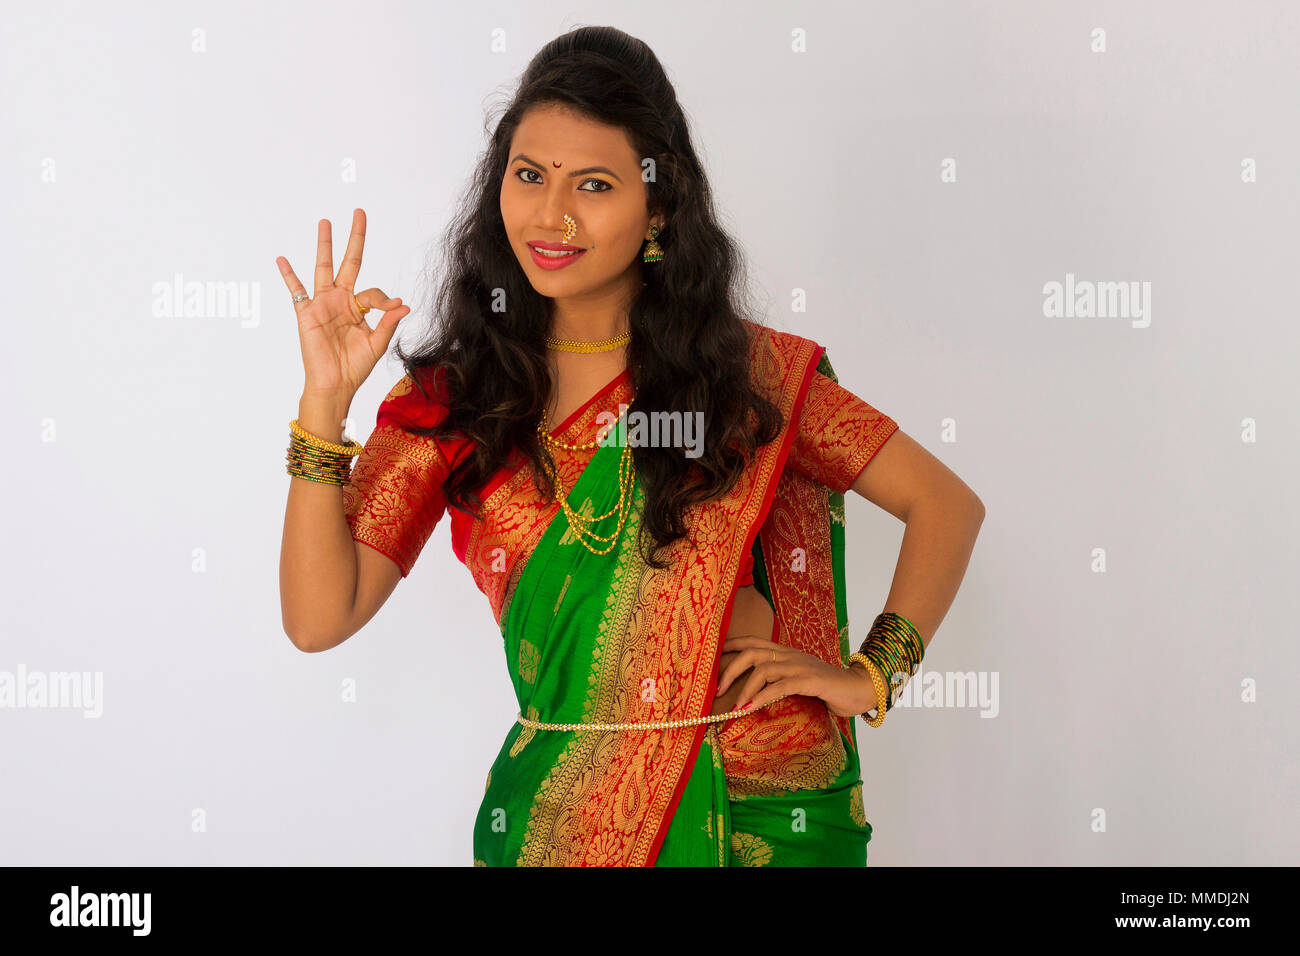 Stylish Indian woman in silk saree and nose ring with OK gesture in a front pose Stock Photo